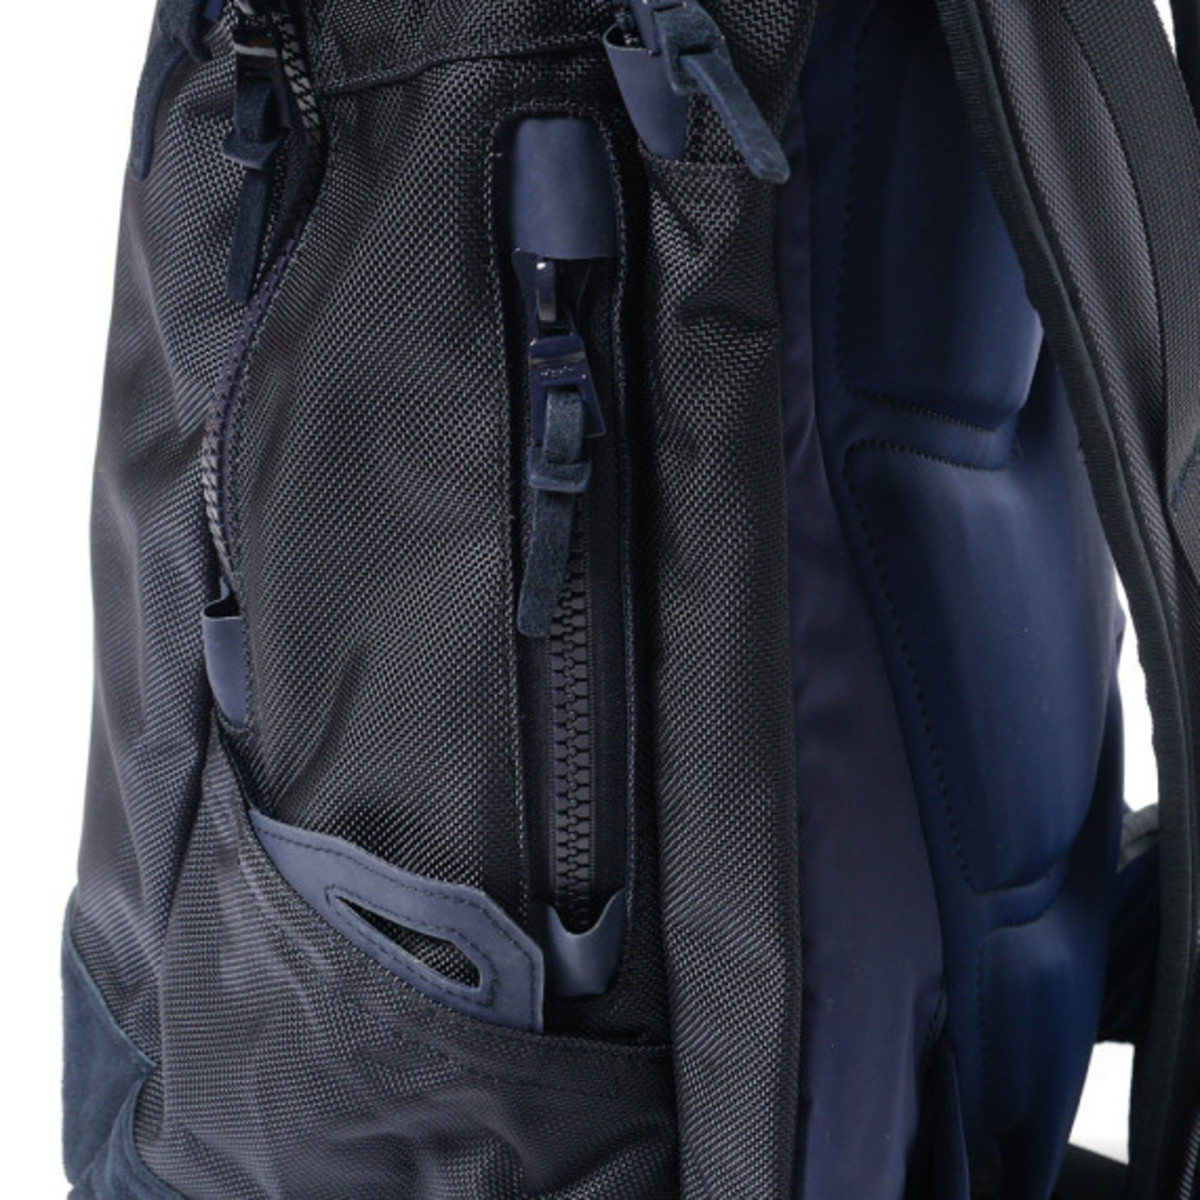 visvim-ballistic-20l-backpack-navy-11